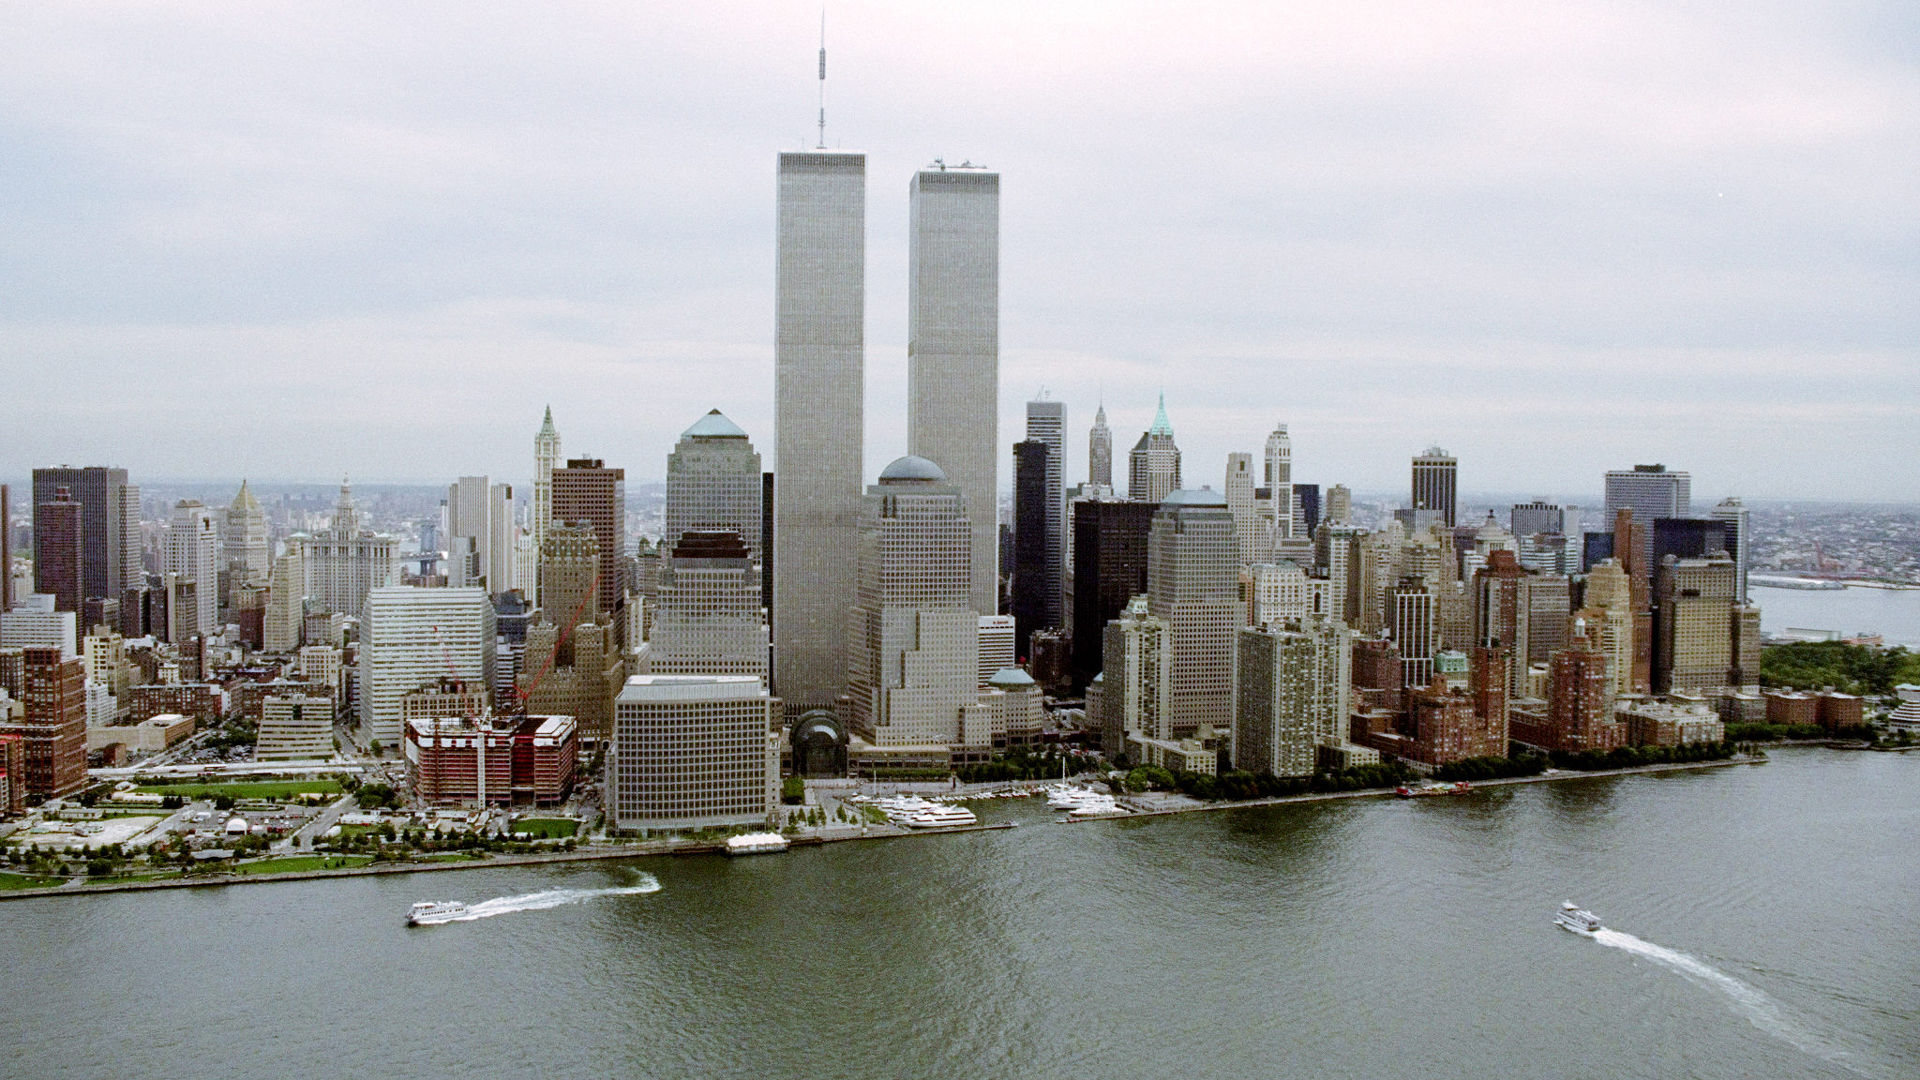 The lower West Side of Manhattan with the twin towers of World Trade Center.